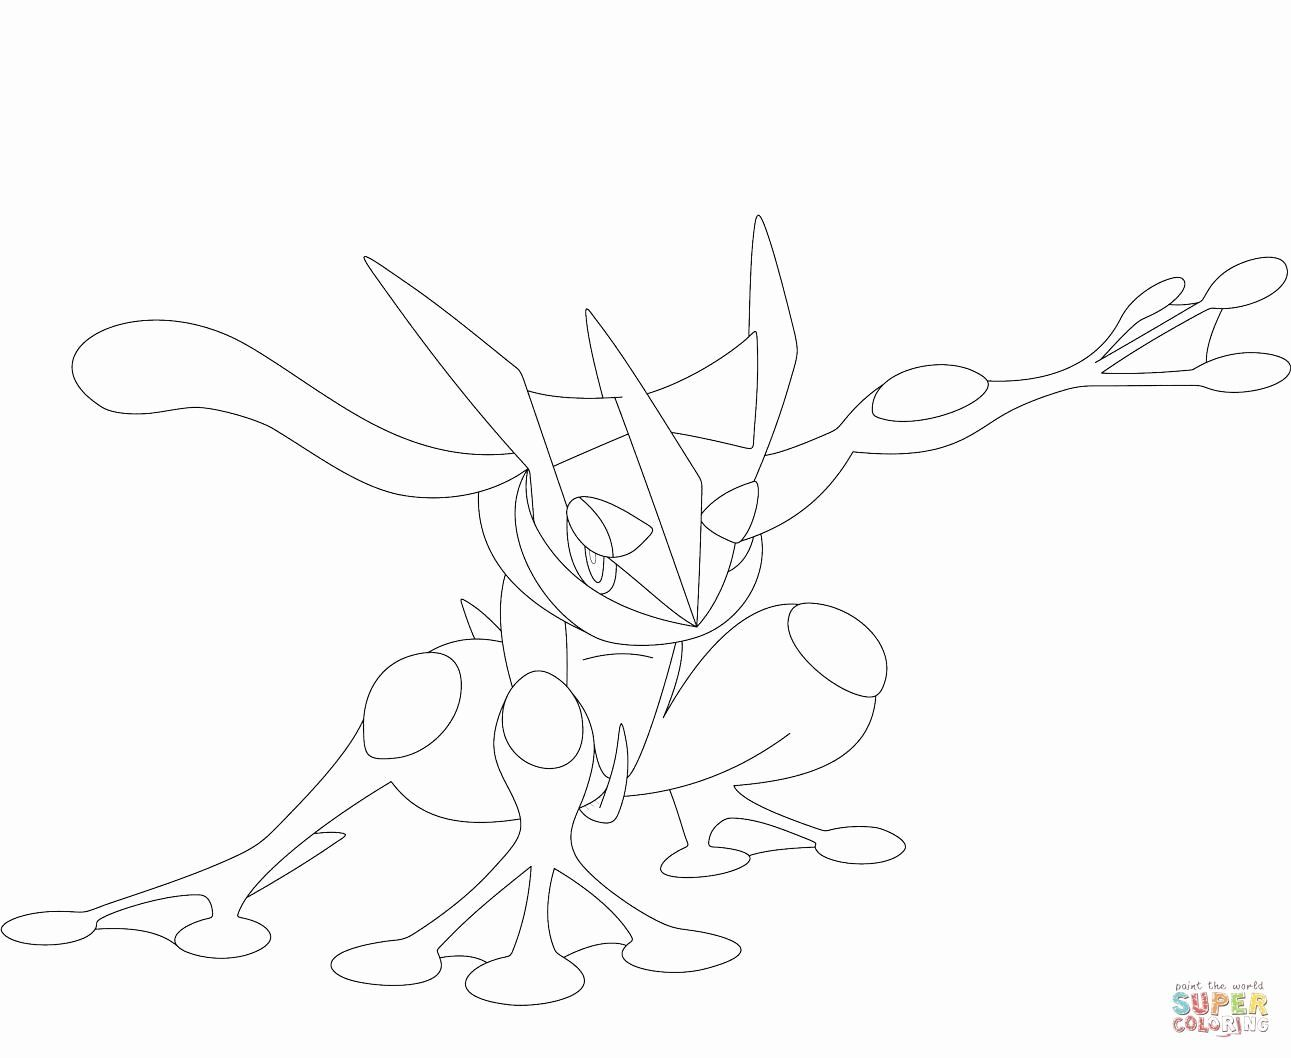 Ash Greninja Coloring Page Elegant Pin On Colorings In 2020